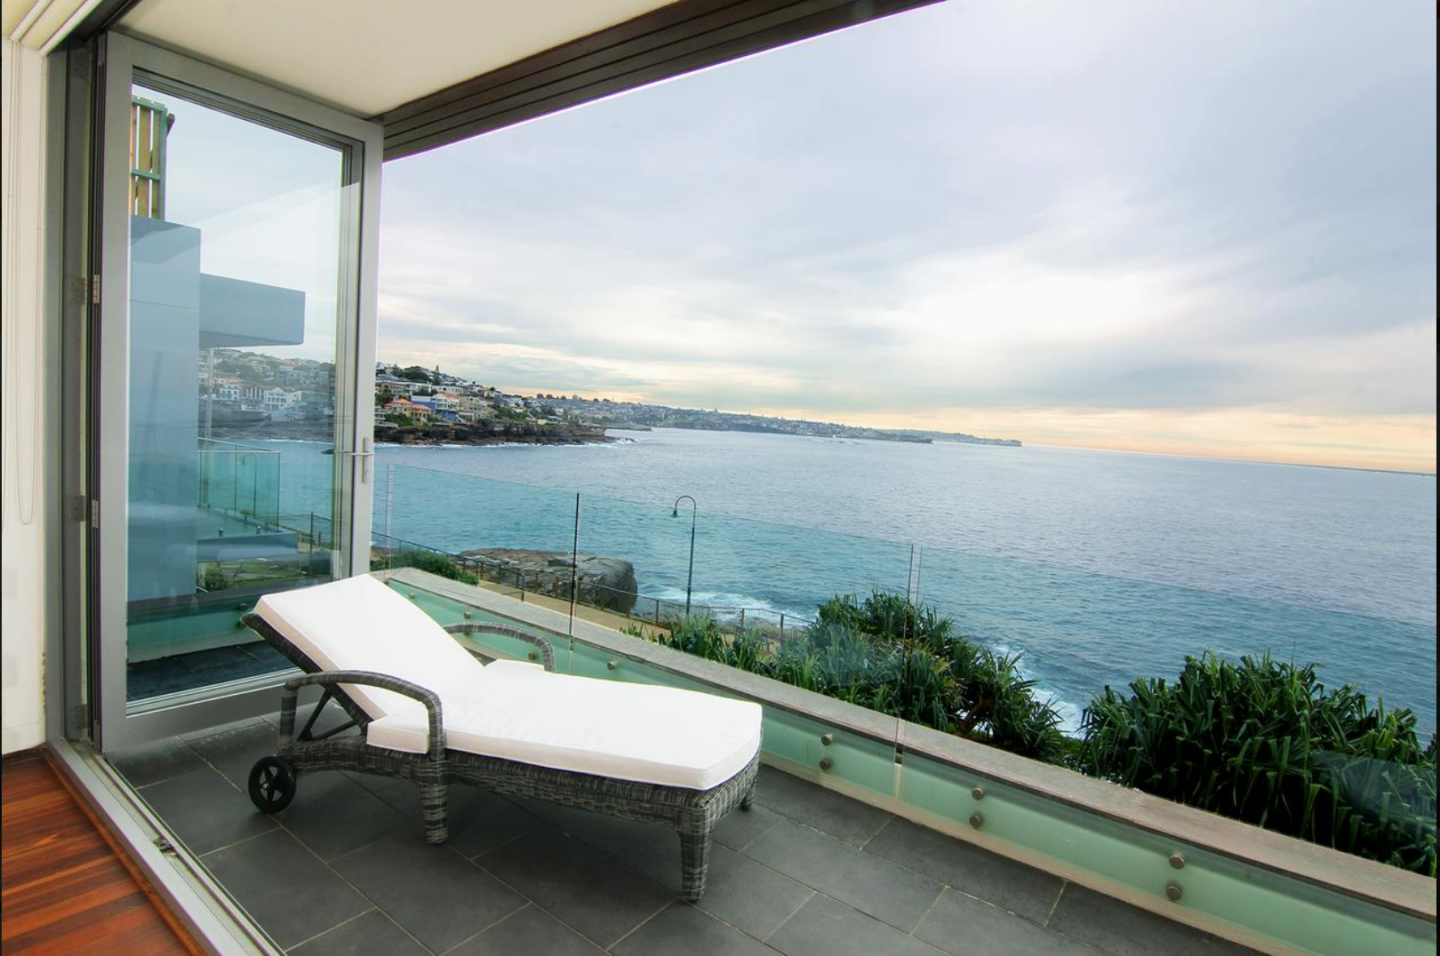 Gorgeous views at Maroubra Beach House - Sydney, Australia on Booking.com - thecasualfree.com